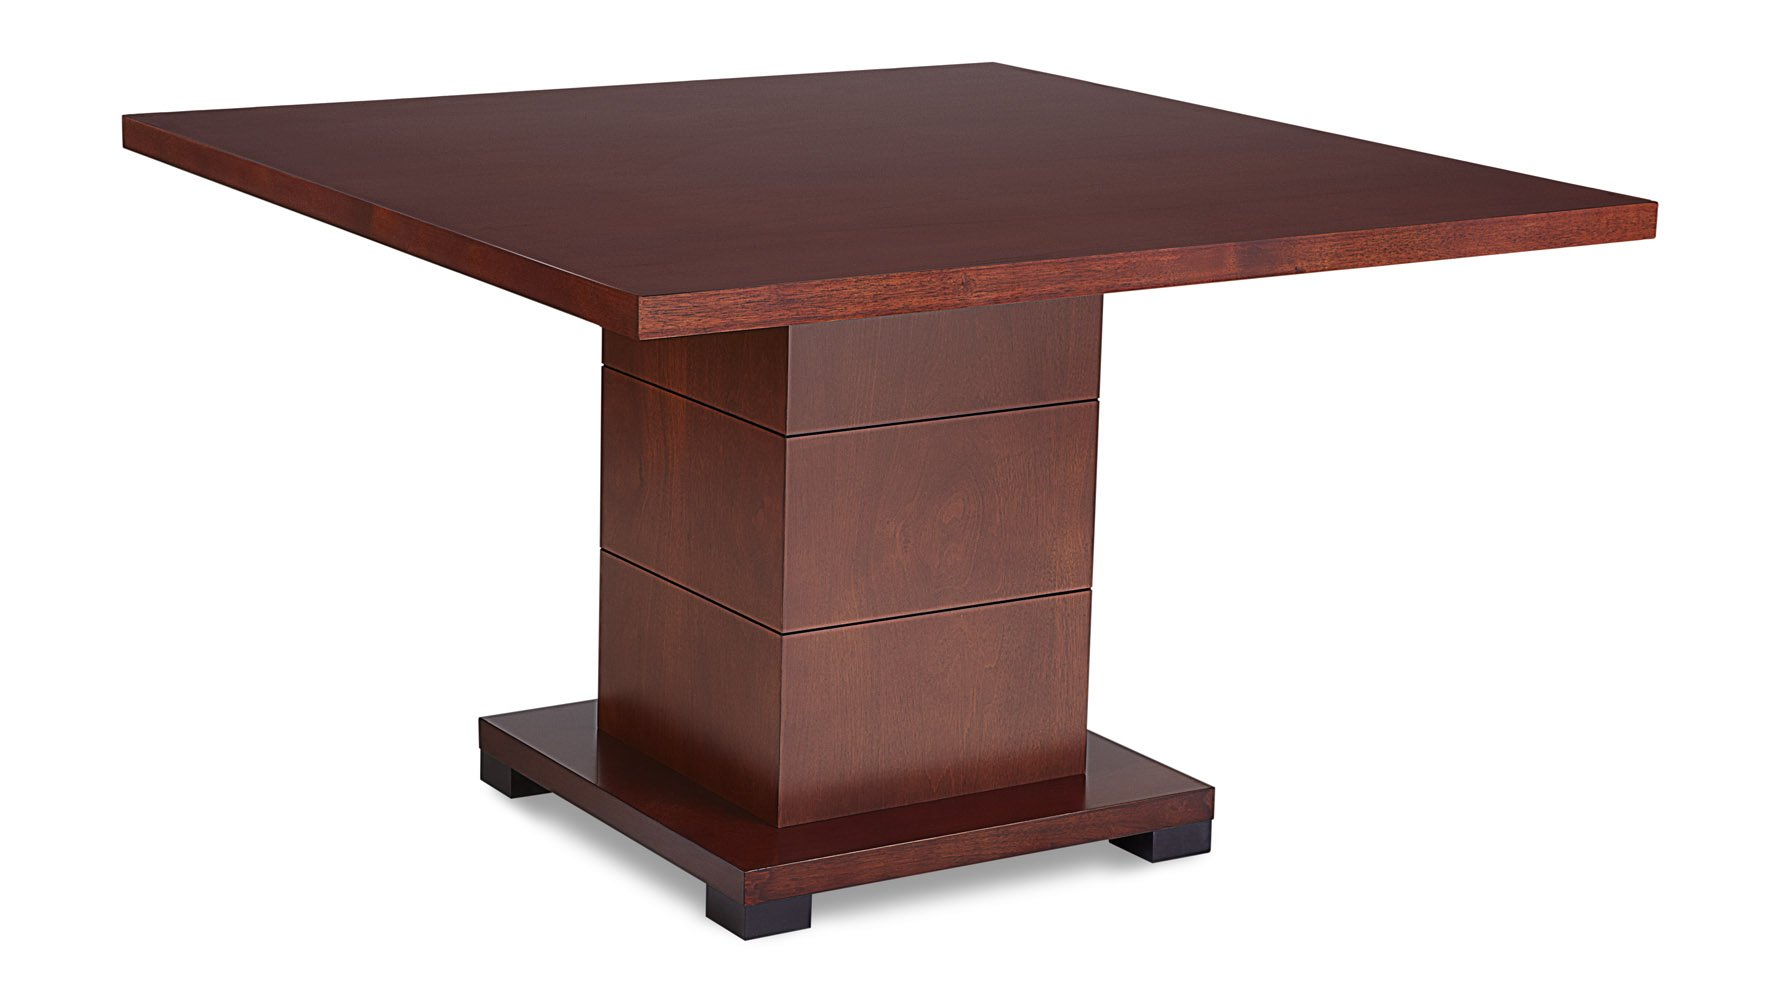 Ford Executive Modern Conference Table in Light Wood - Square